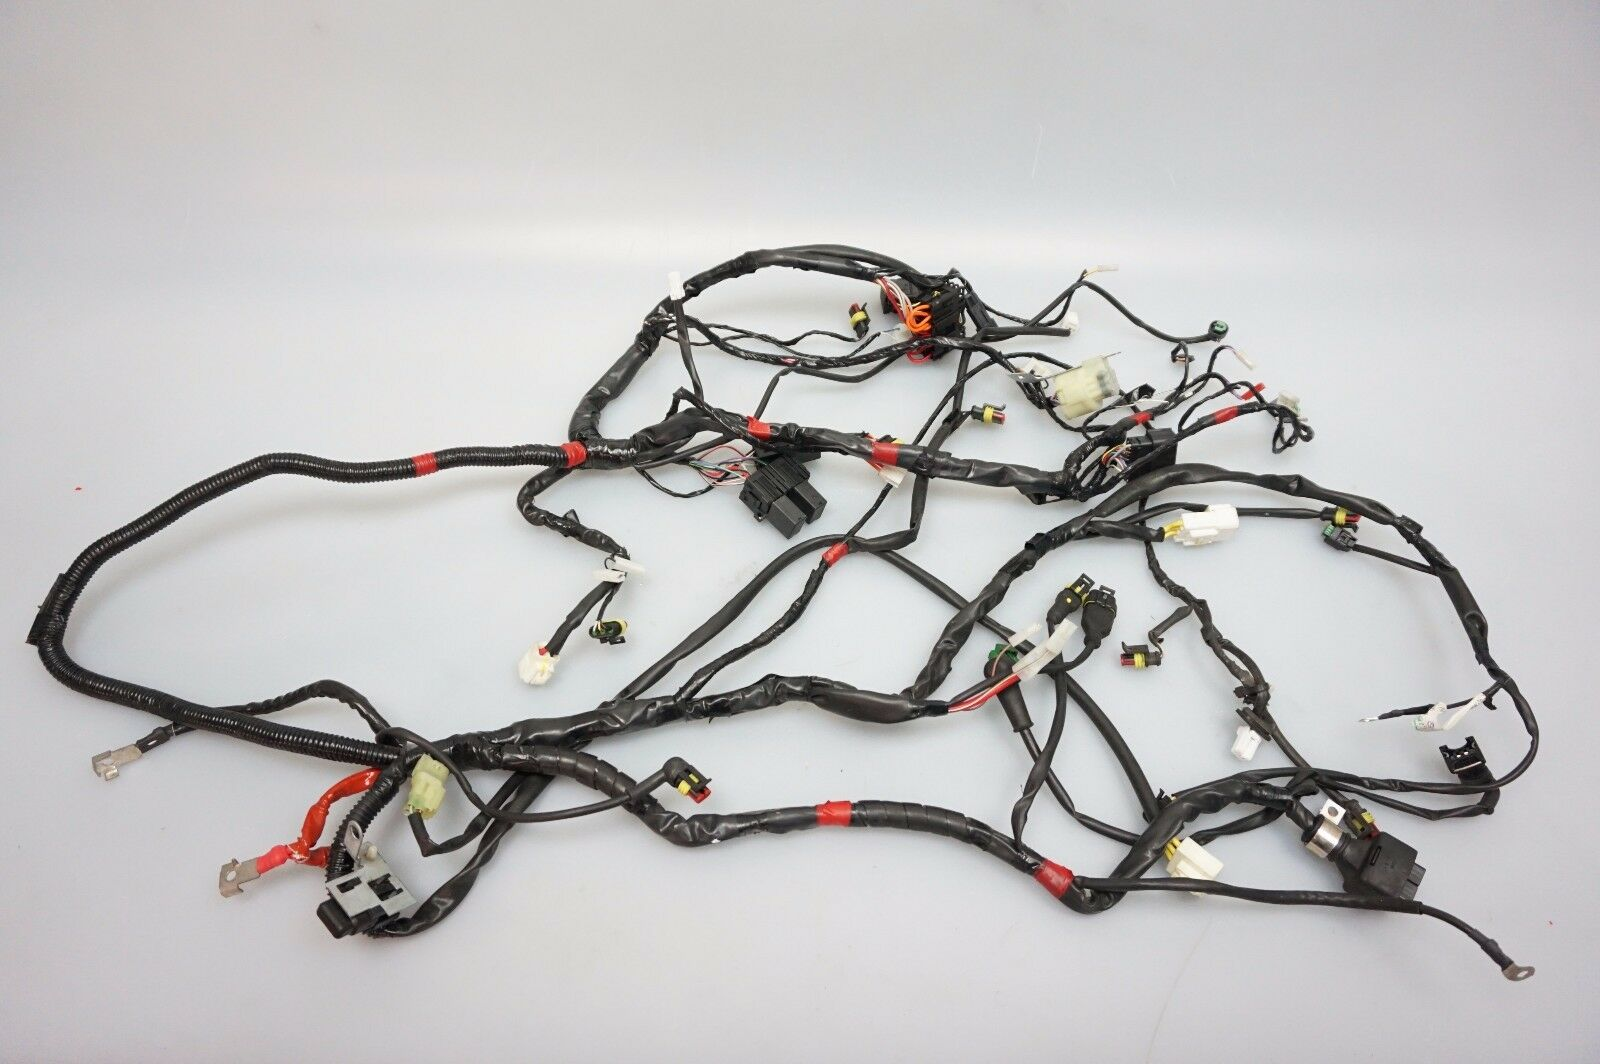 Harness Main Cable Wiring Piaggio Vespa Gts Super A 1 Of 1only Available